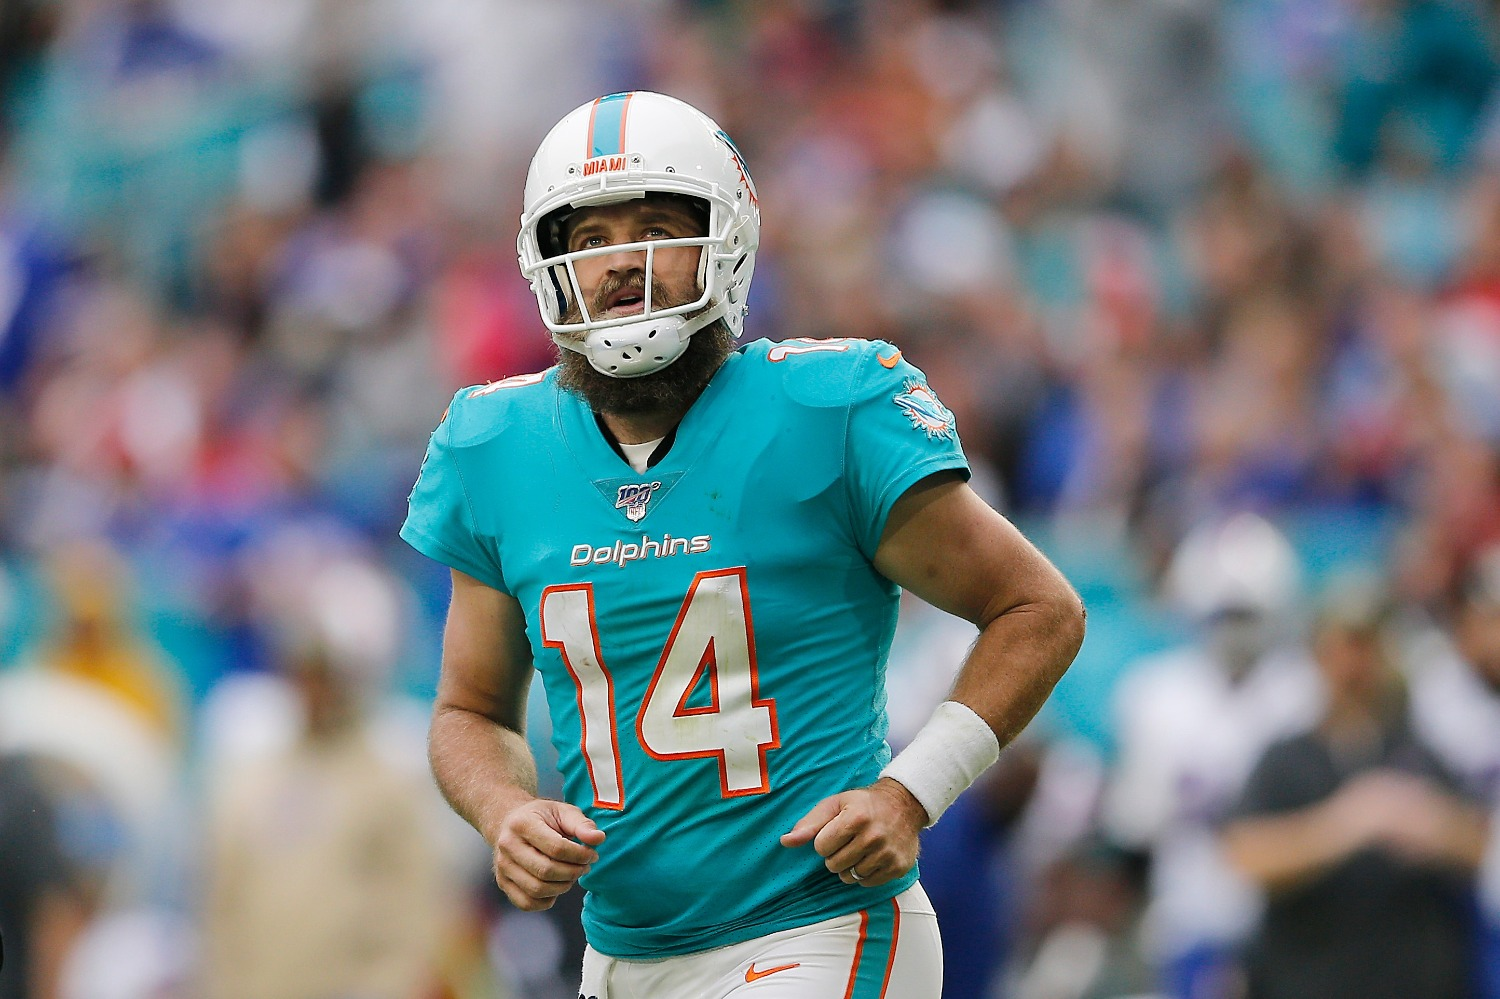 Miami Dolphins quarterback Ryan Fitzpatrick missed Saturday's scrimmage after suffering a tragic loss with his mom's untimely death.